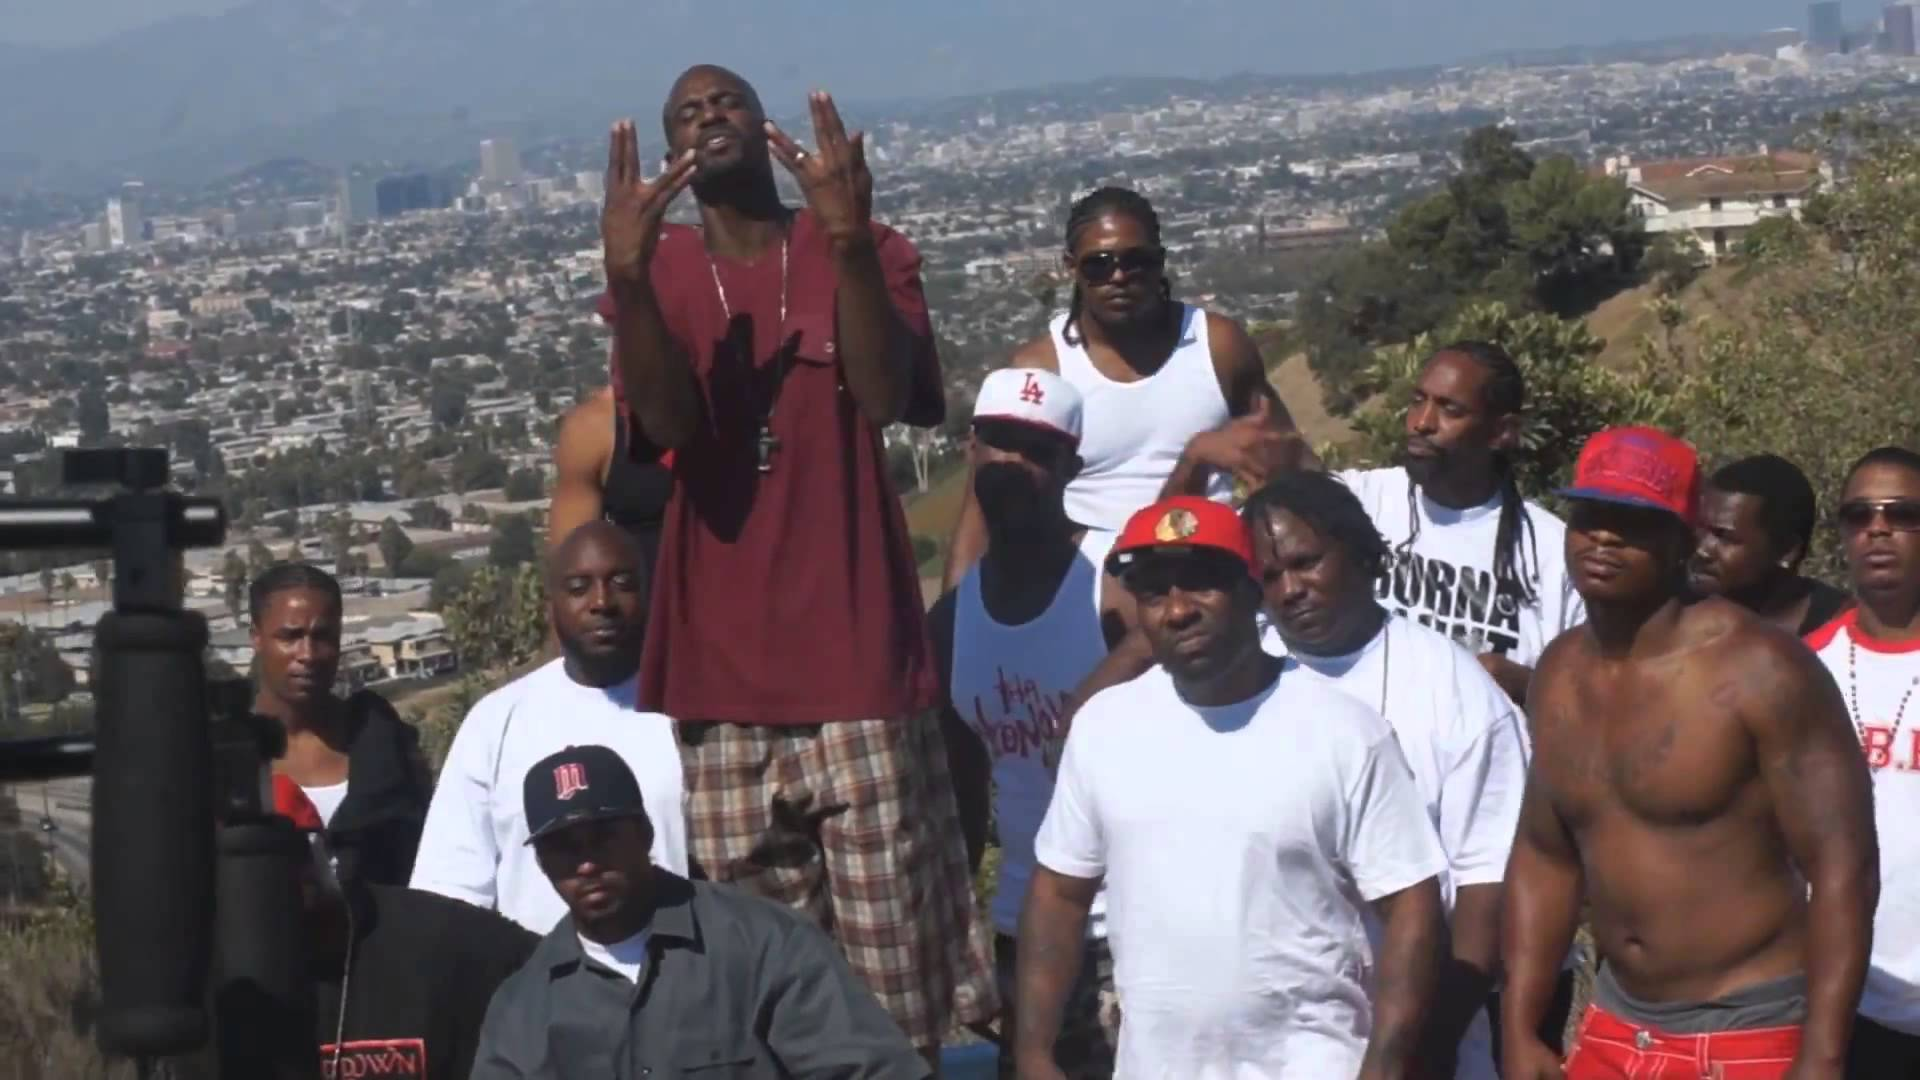 bloods sets in los angeles county pirus brims - HD1920×1080